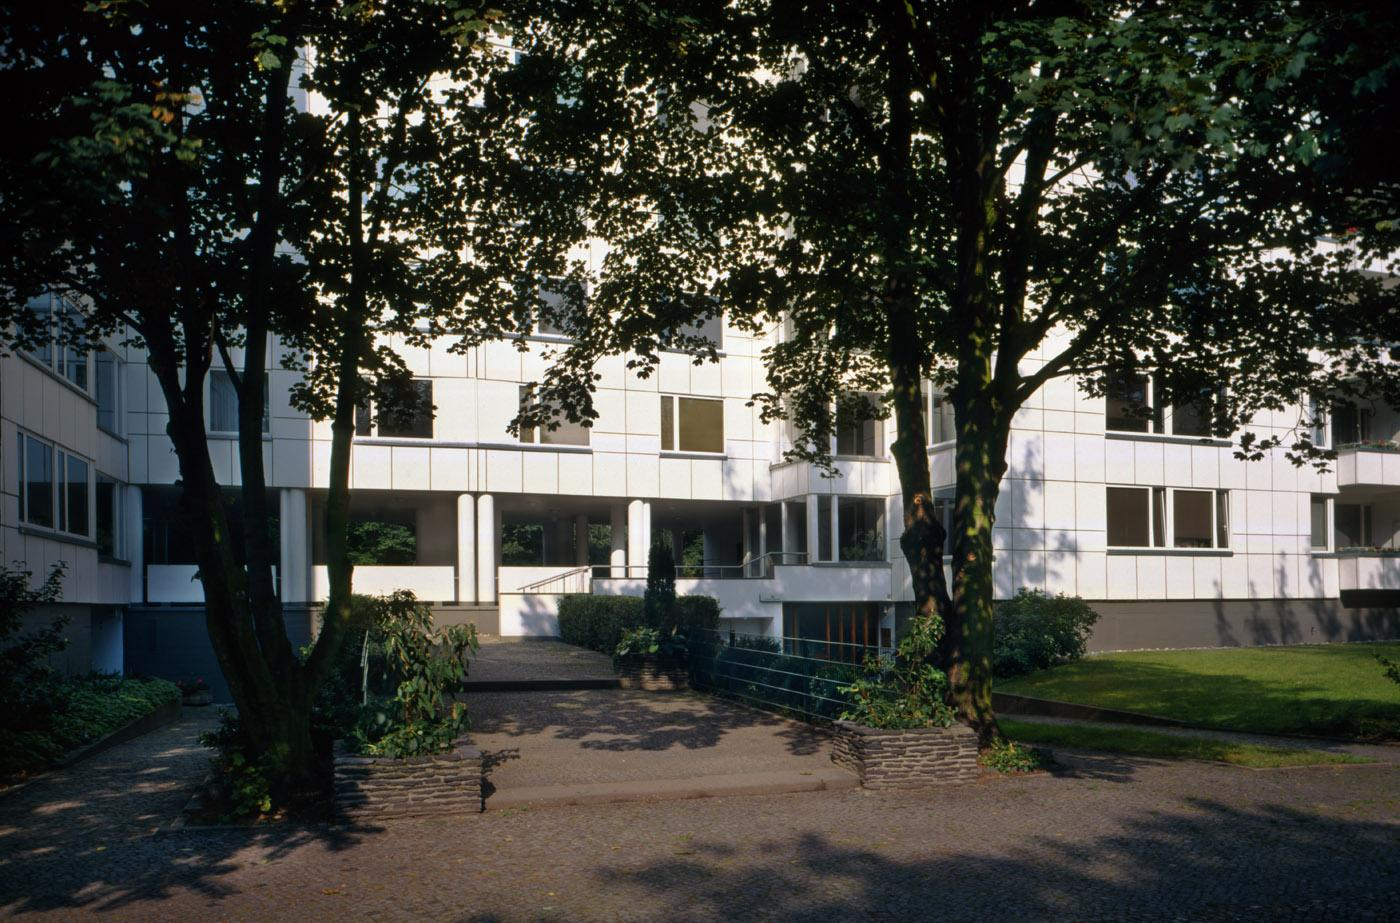 Hansaviertel Apartment building